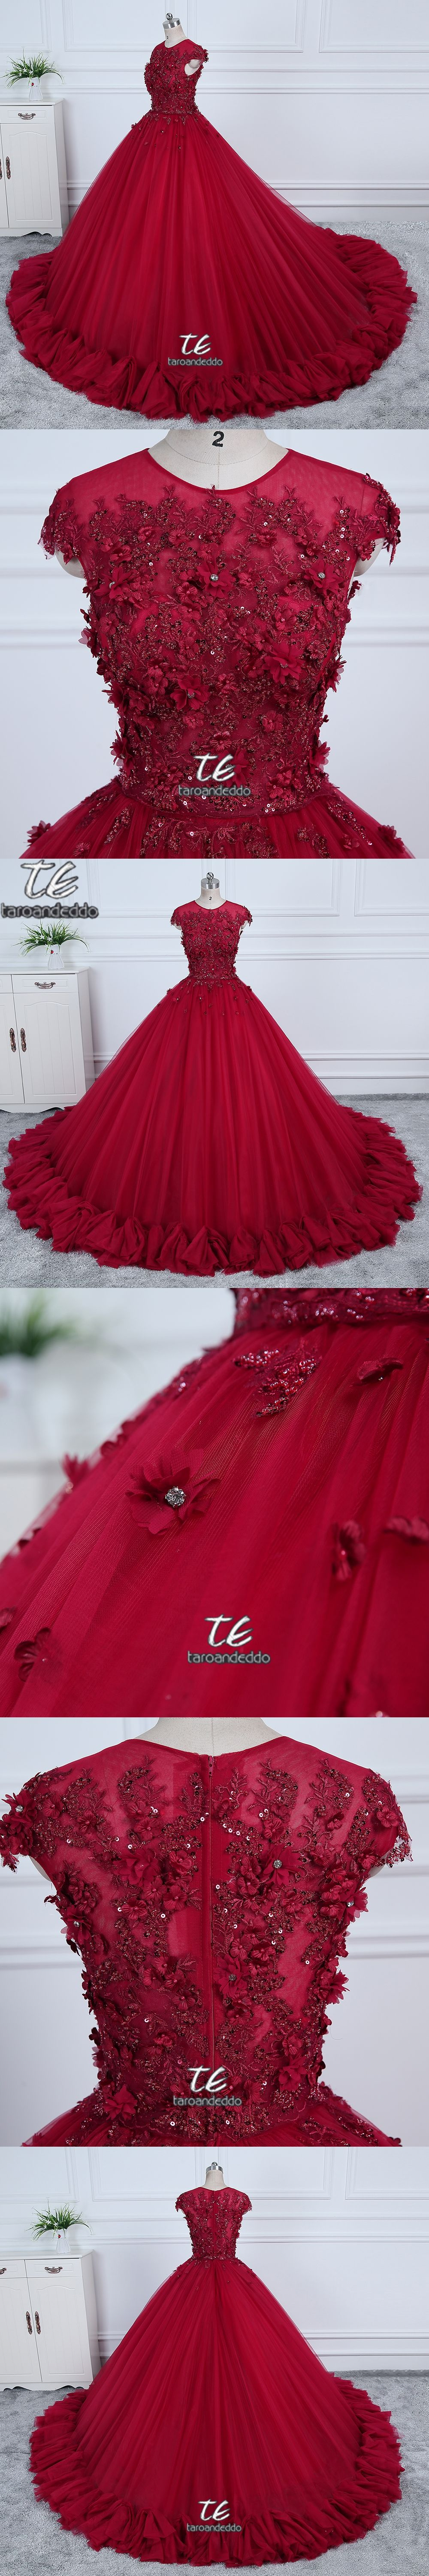 2018 O-neck Ball Gowns Burgundy Wedding Dress with Color 3D Flowers Applique  with Rhinestones a2a73a591649